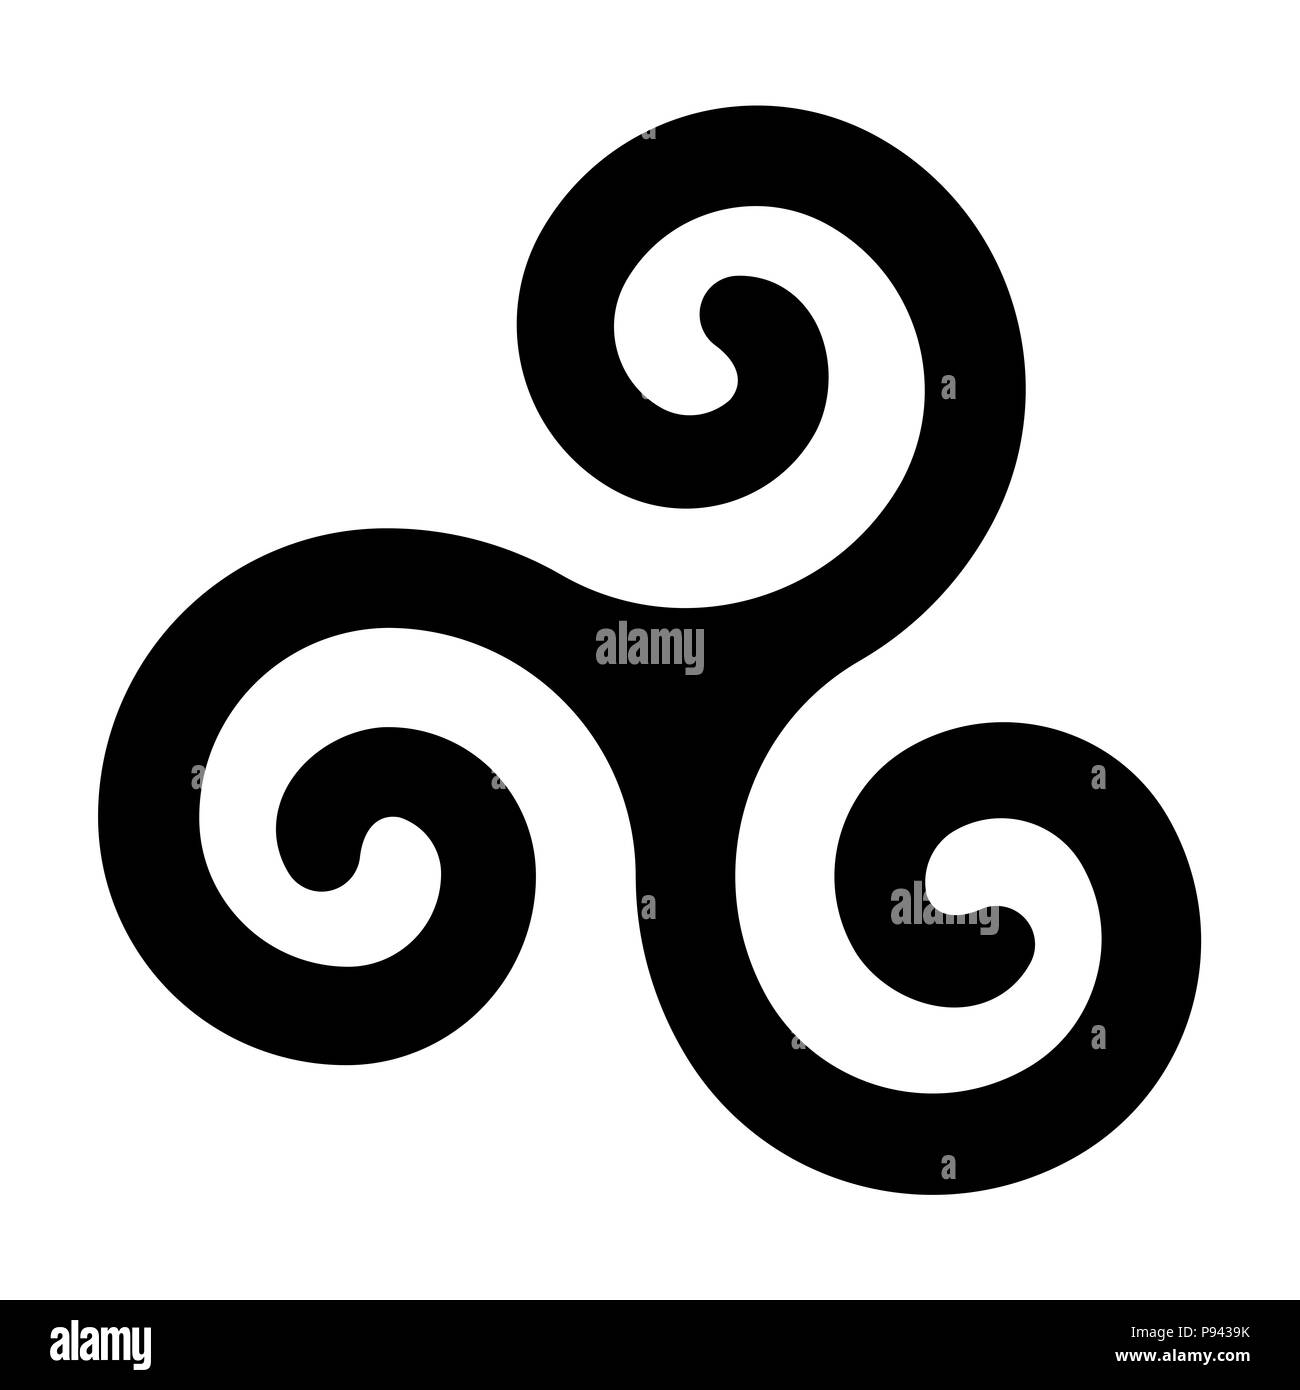 Black celtic spiral triskele on white background. Triskelion. A motif consisting of a triple spiral exhibiting rotational symmetry. Twisted spirals. - Stock Image